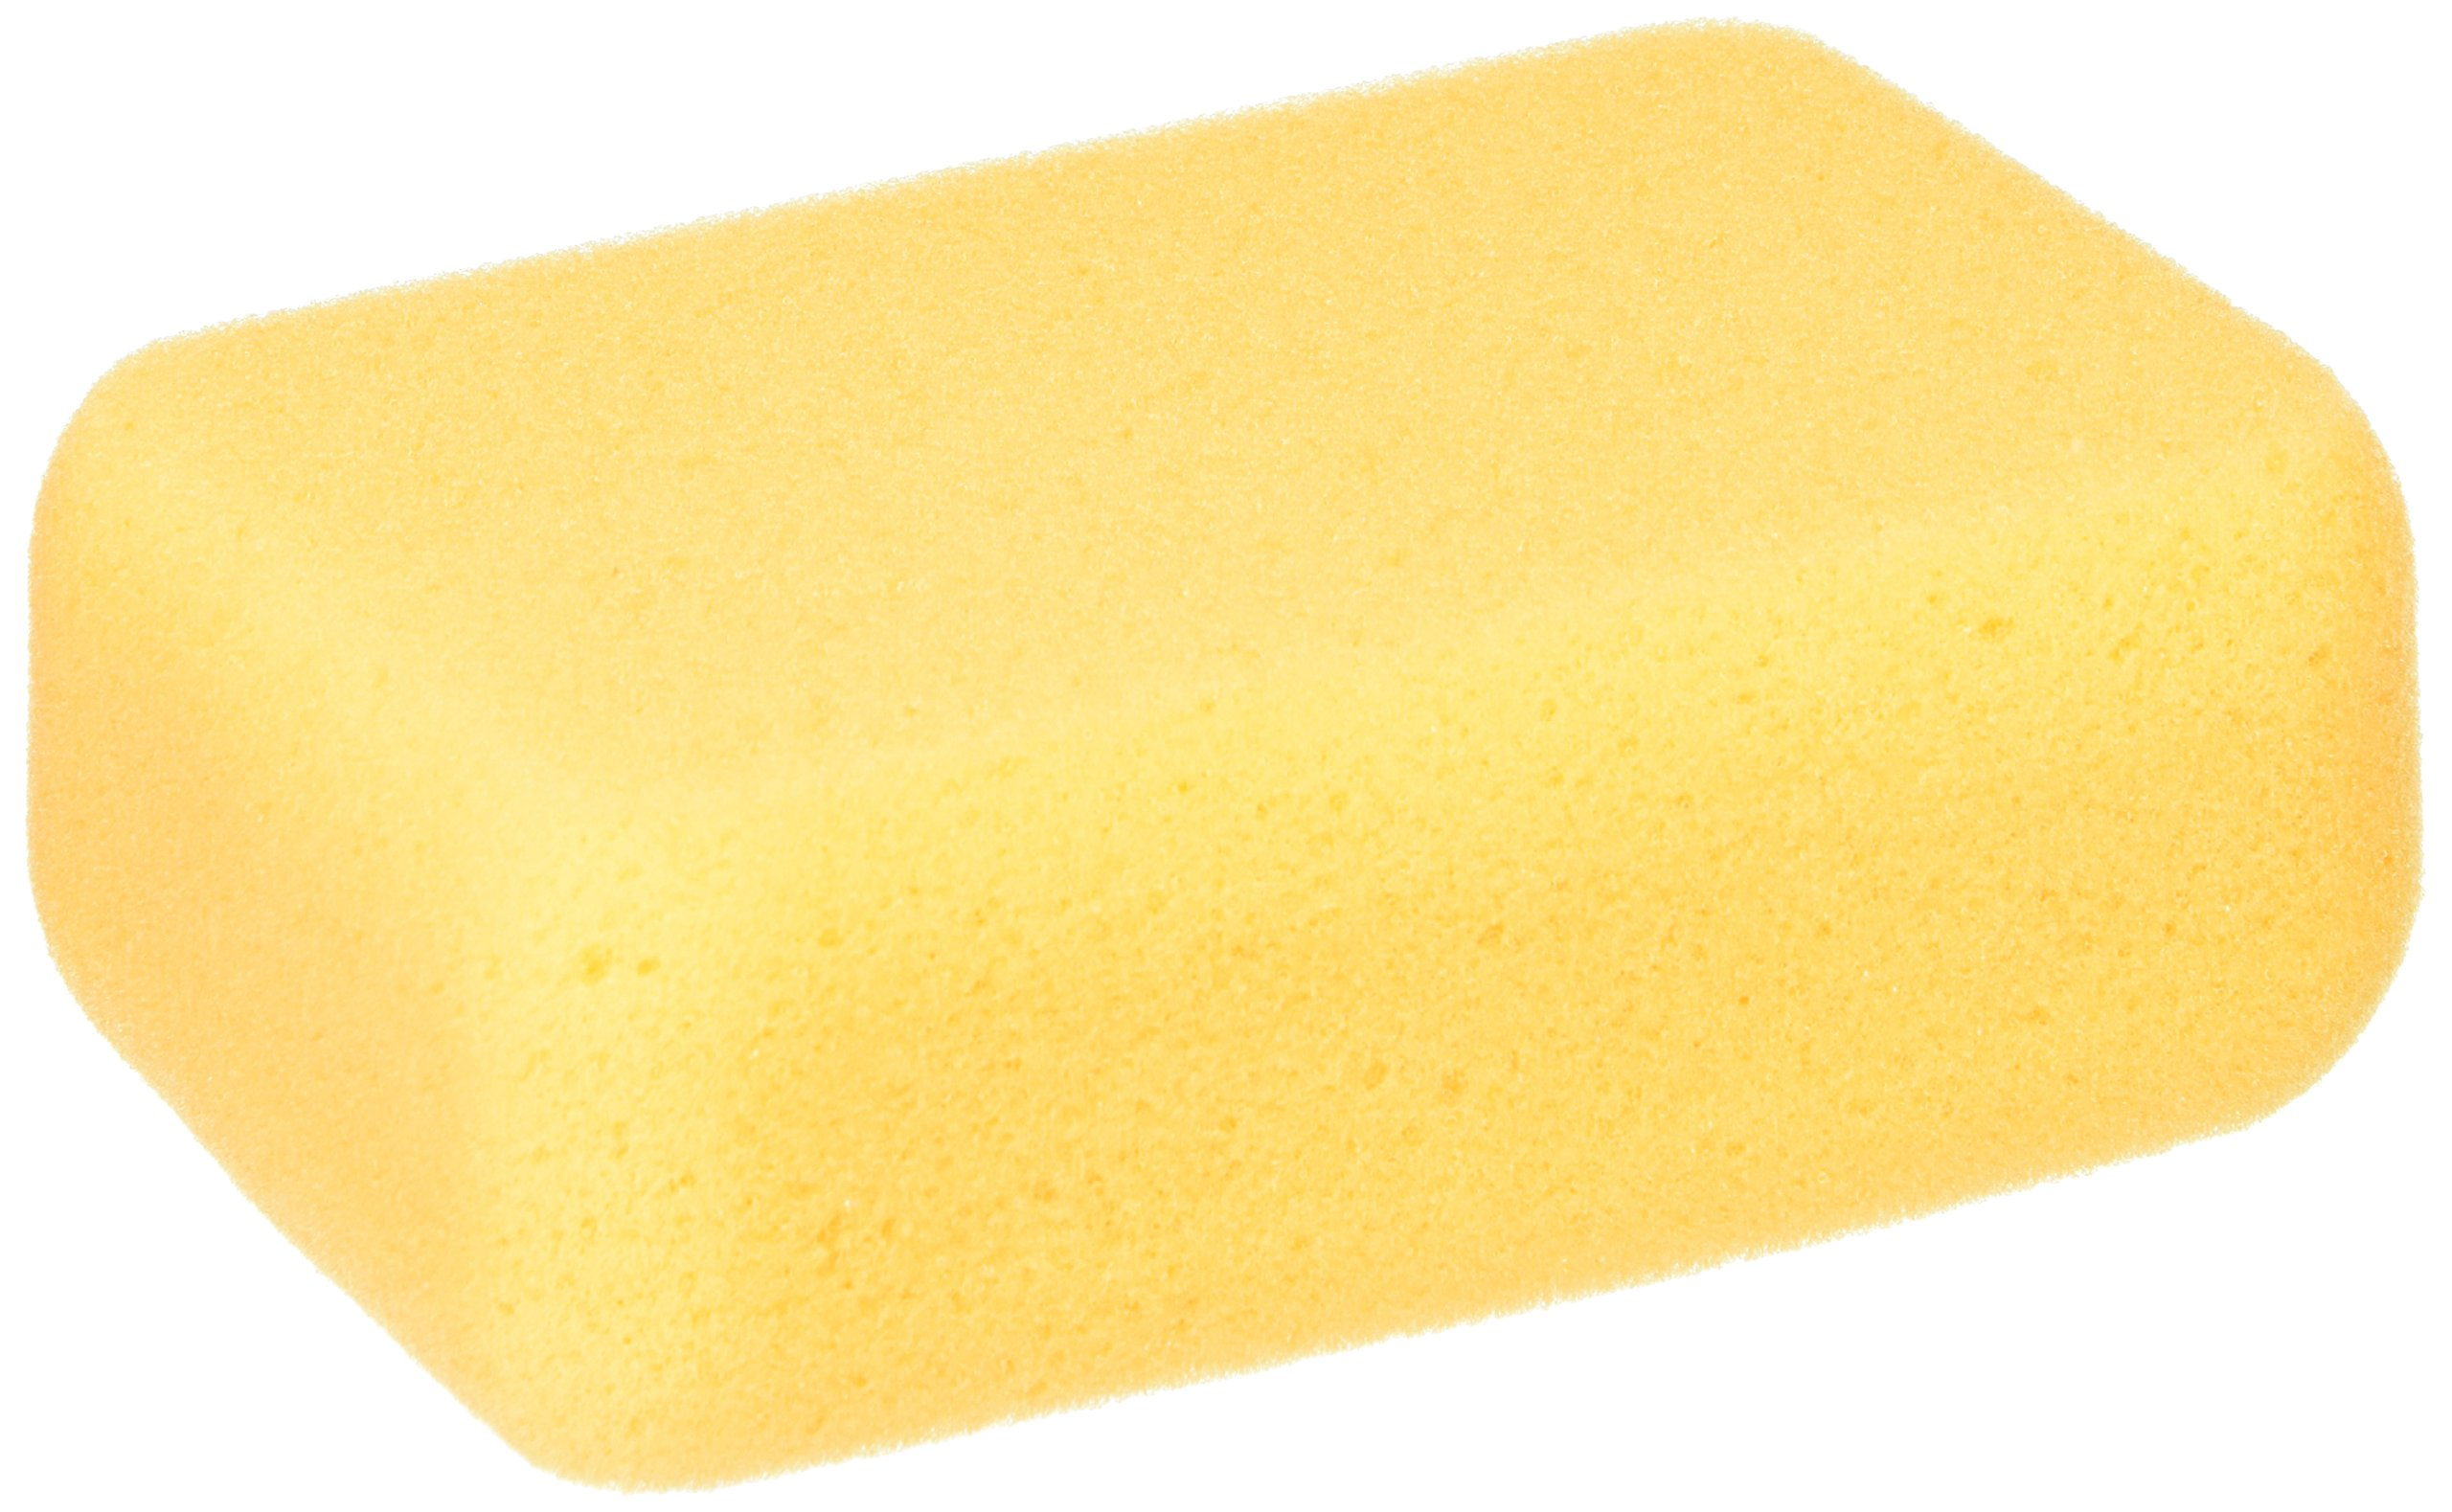 Marshalltown TGS2 Hydra Tile Grout Sponge, Medium by Marshalltown